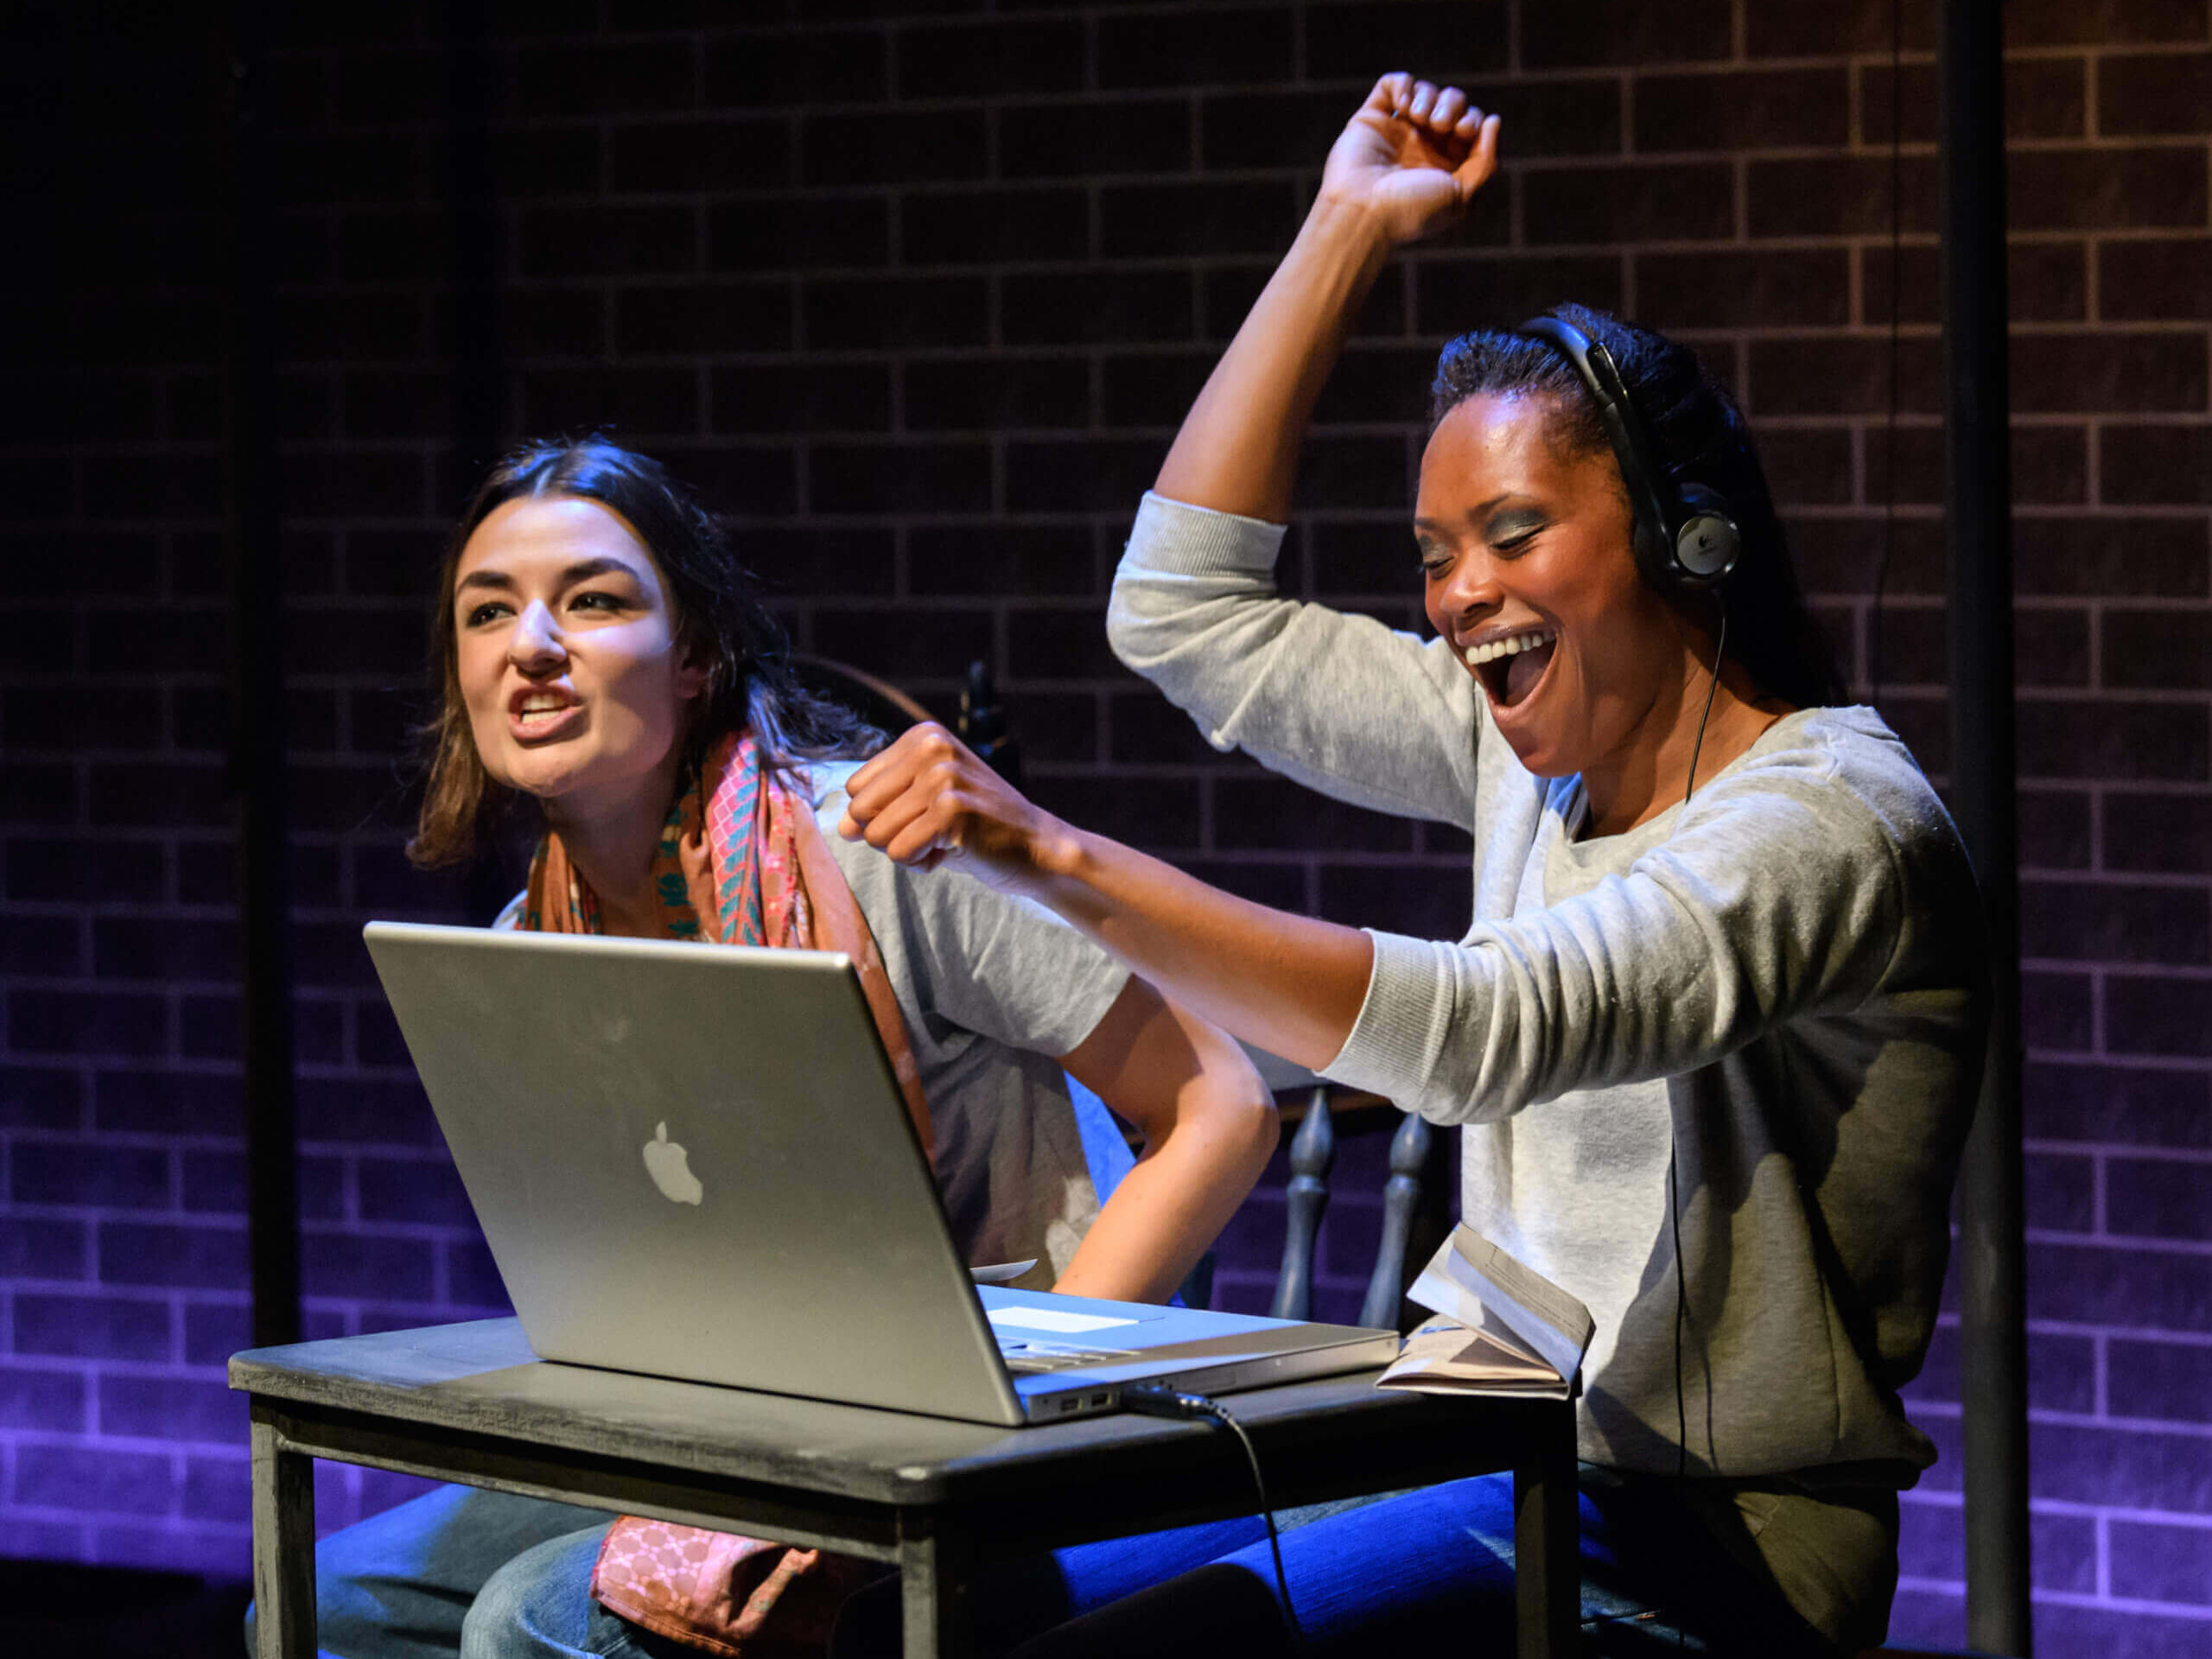 The Last Queen of Scotland production image showing two women are cheering while sitting at a table with a laptop on it